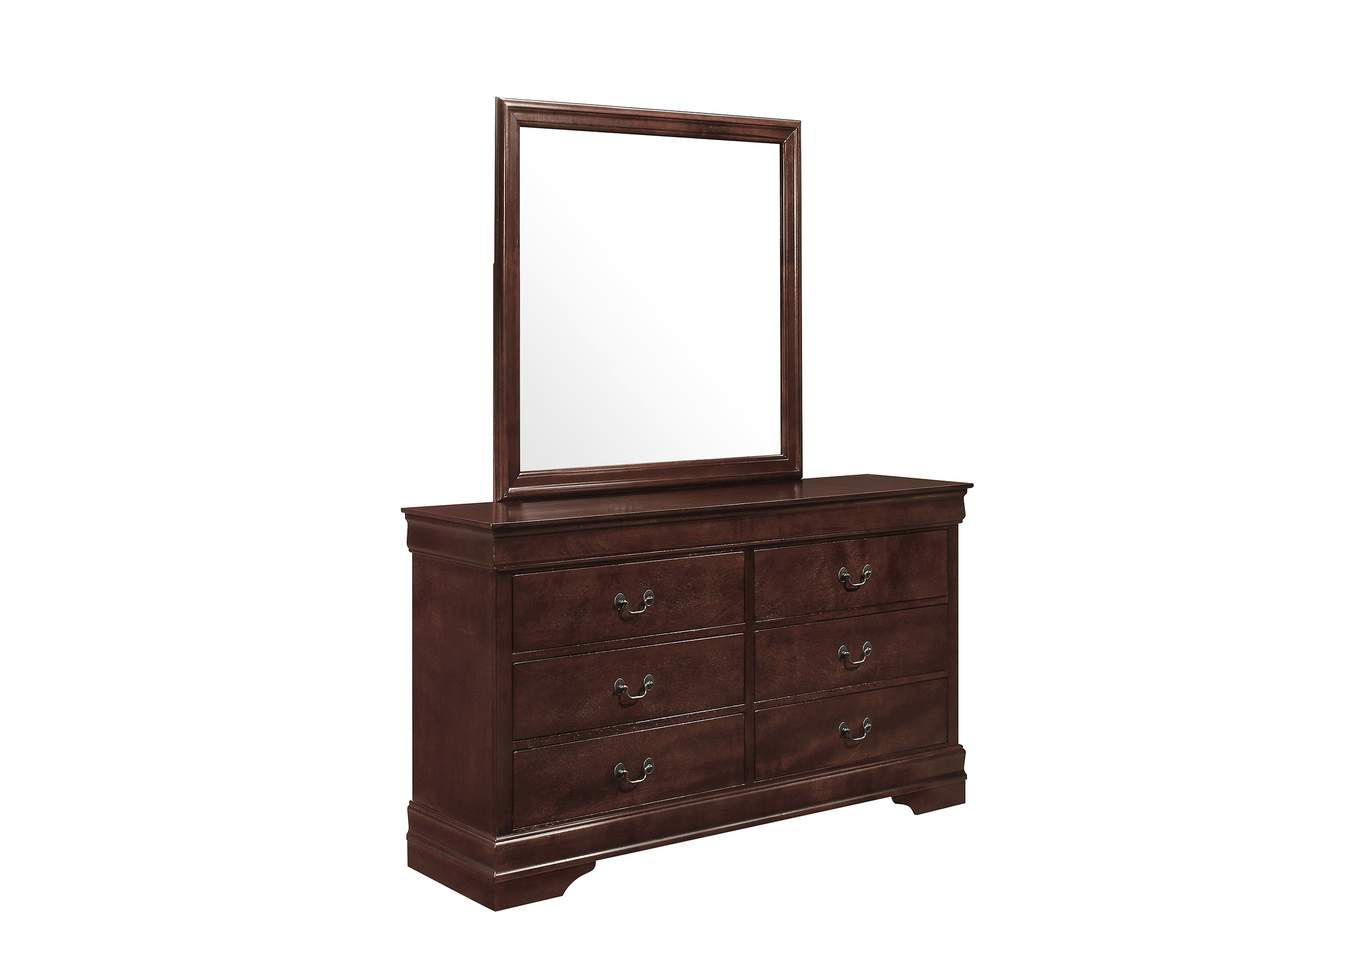 Marley Merlot Dresser,Global Furniture USA